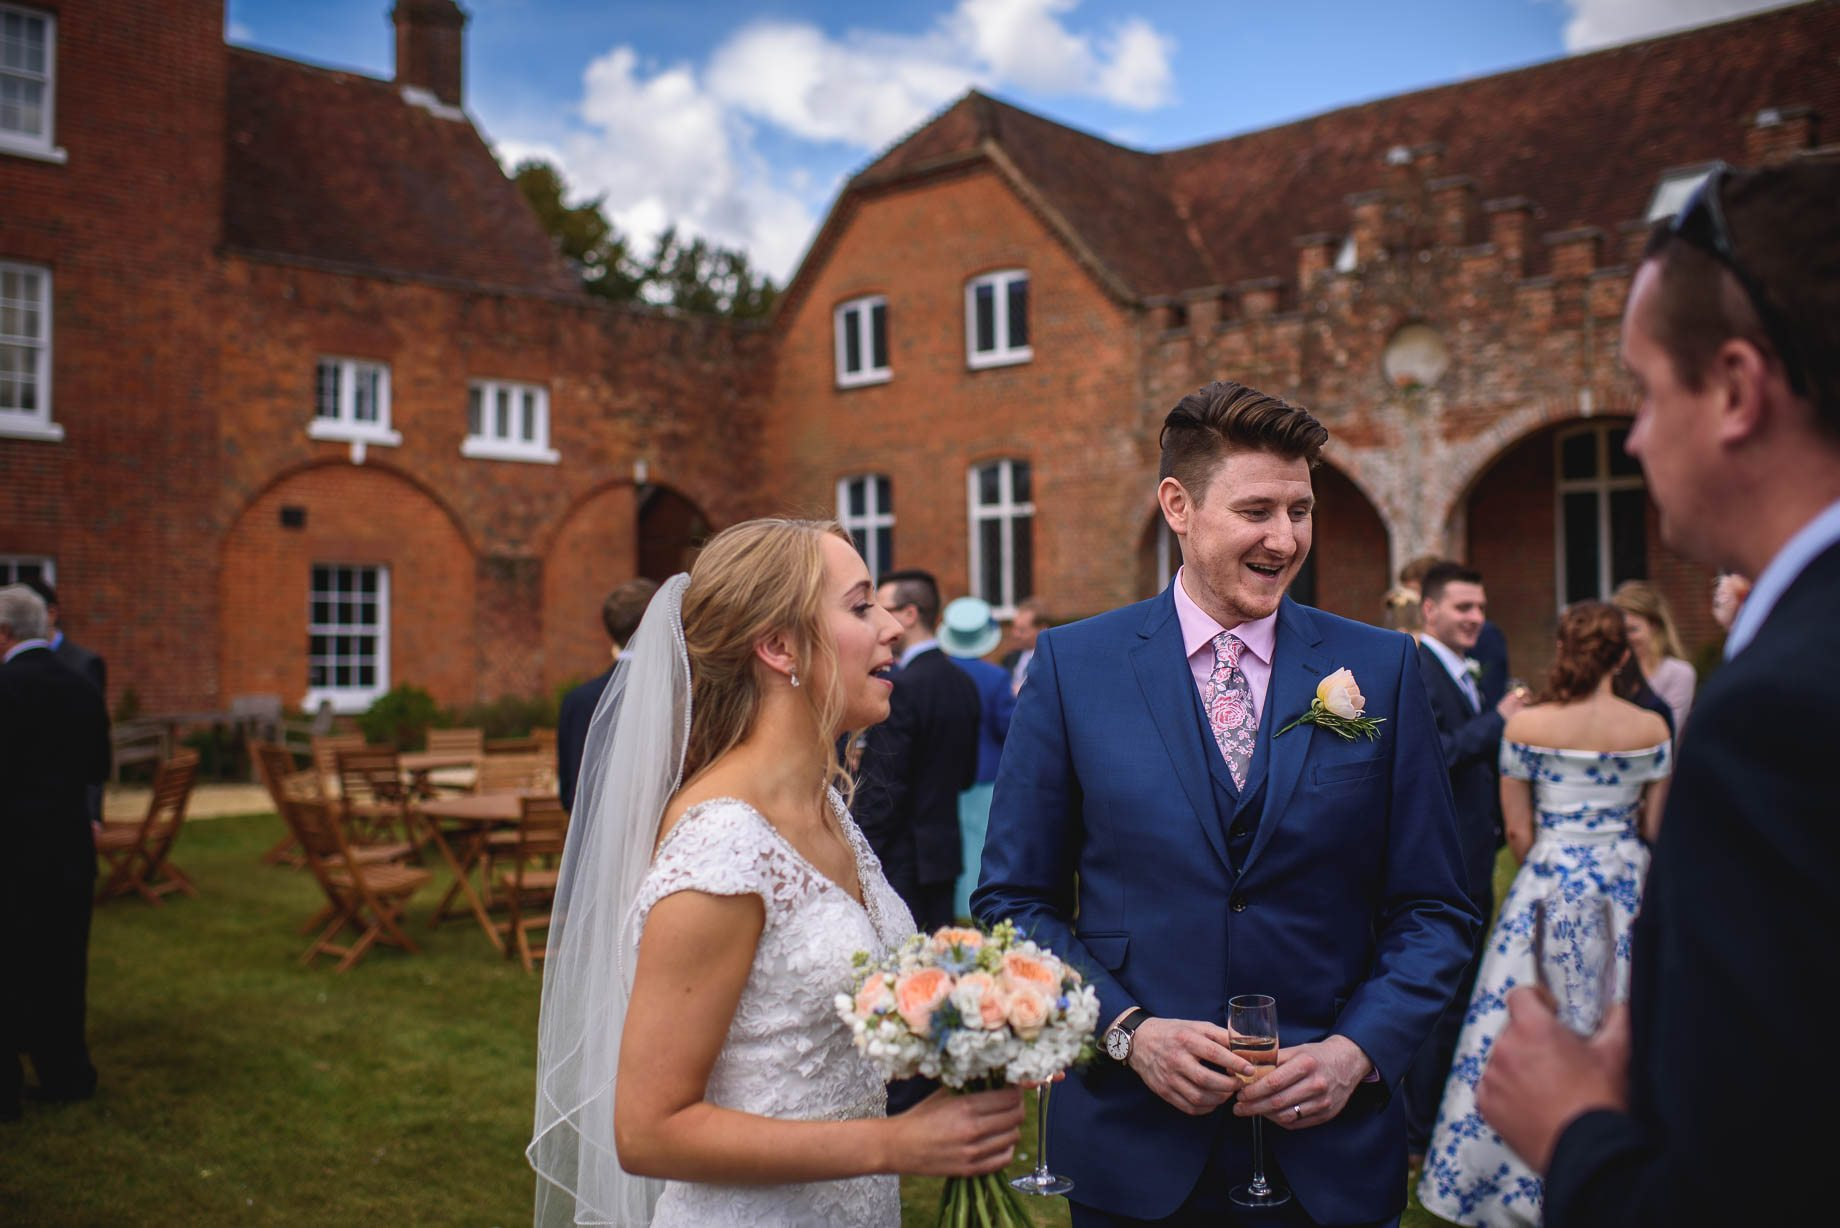 Hampshire wedding photography by Guy Collier - Emily and Tom (77 of 164)